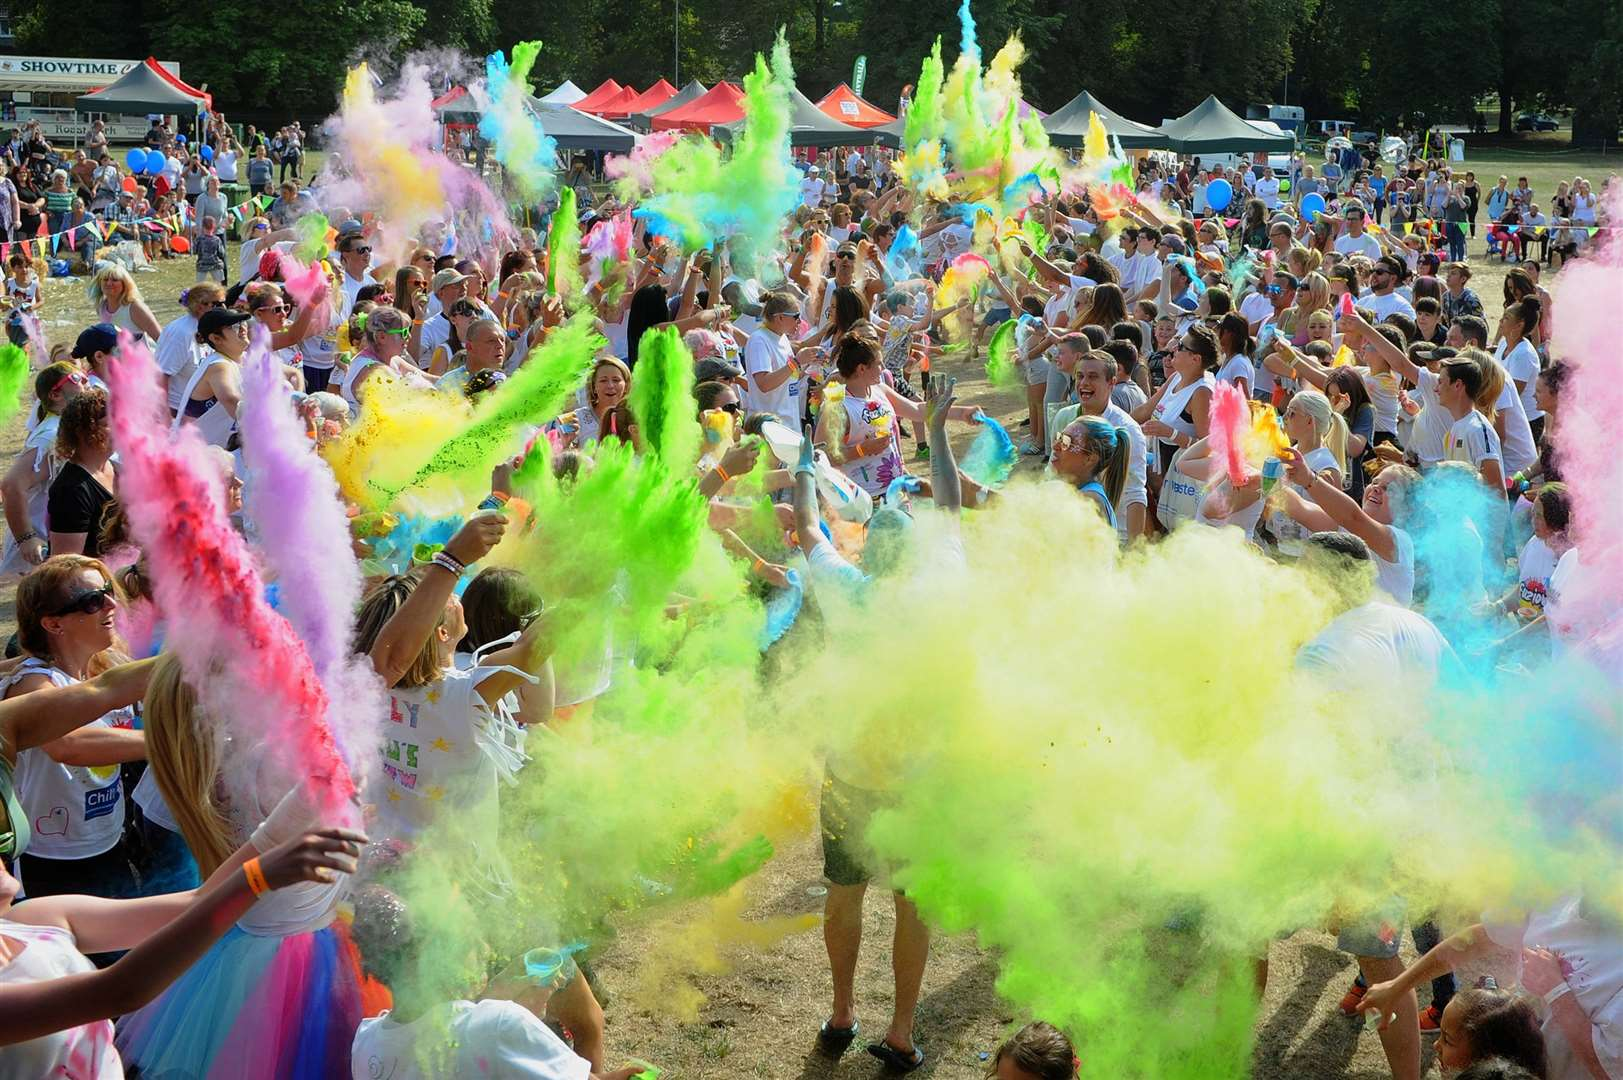 The finale of the sixth Fuzion Thetford event saw bursts of powdered paint fly into the air and cover the participants during the paint fight in the main arena PICTURE: Mecha Morton